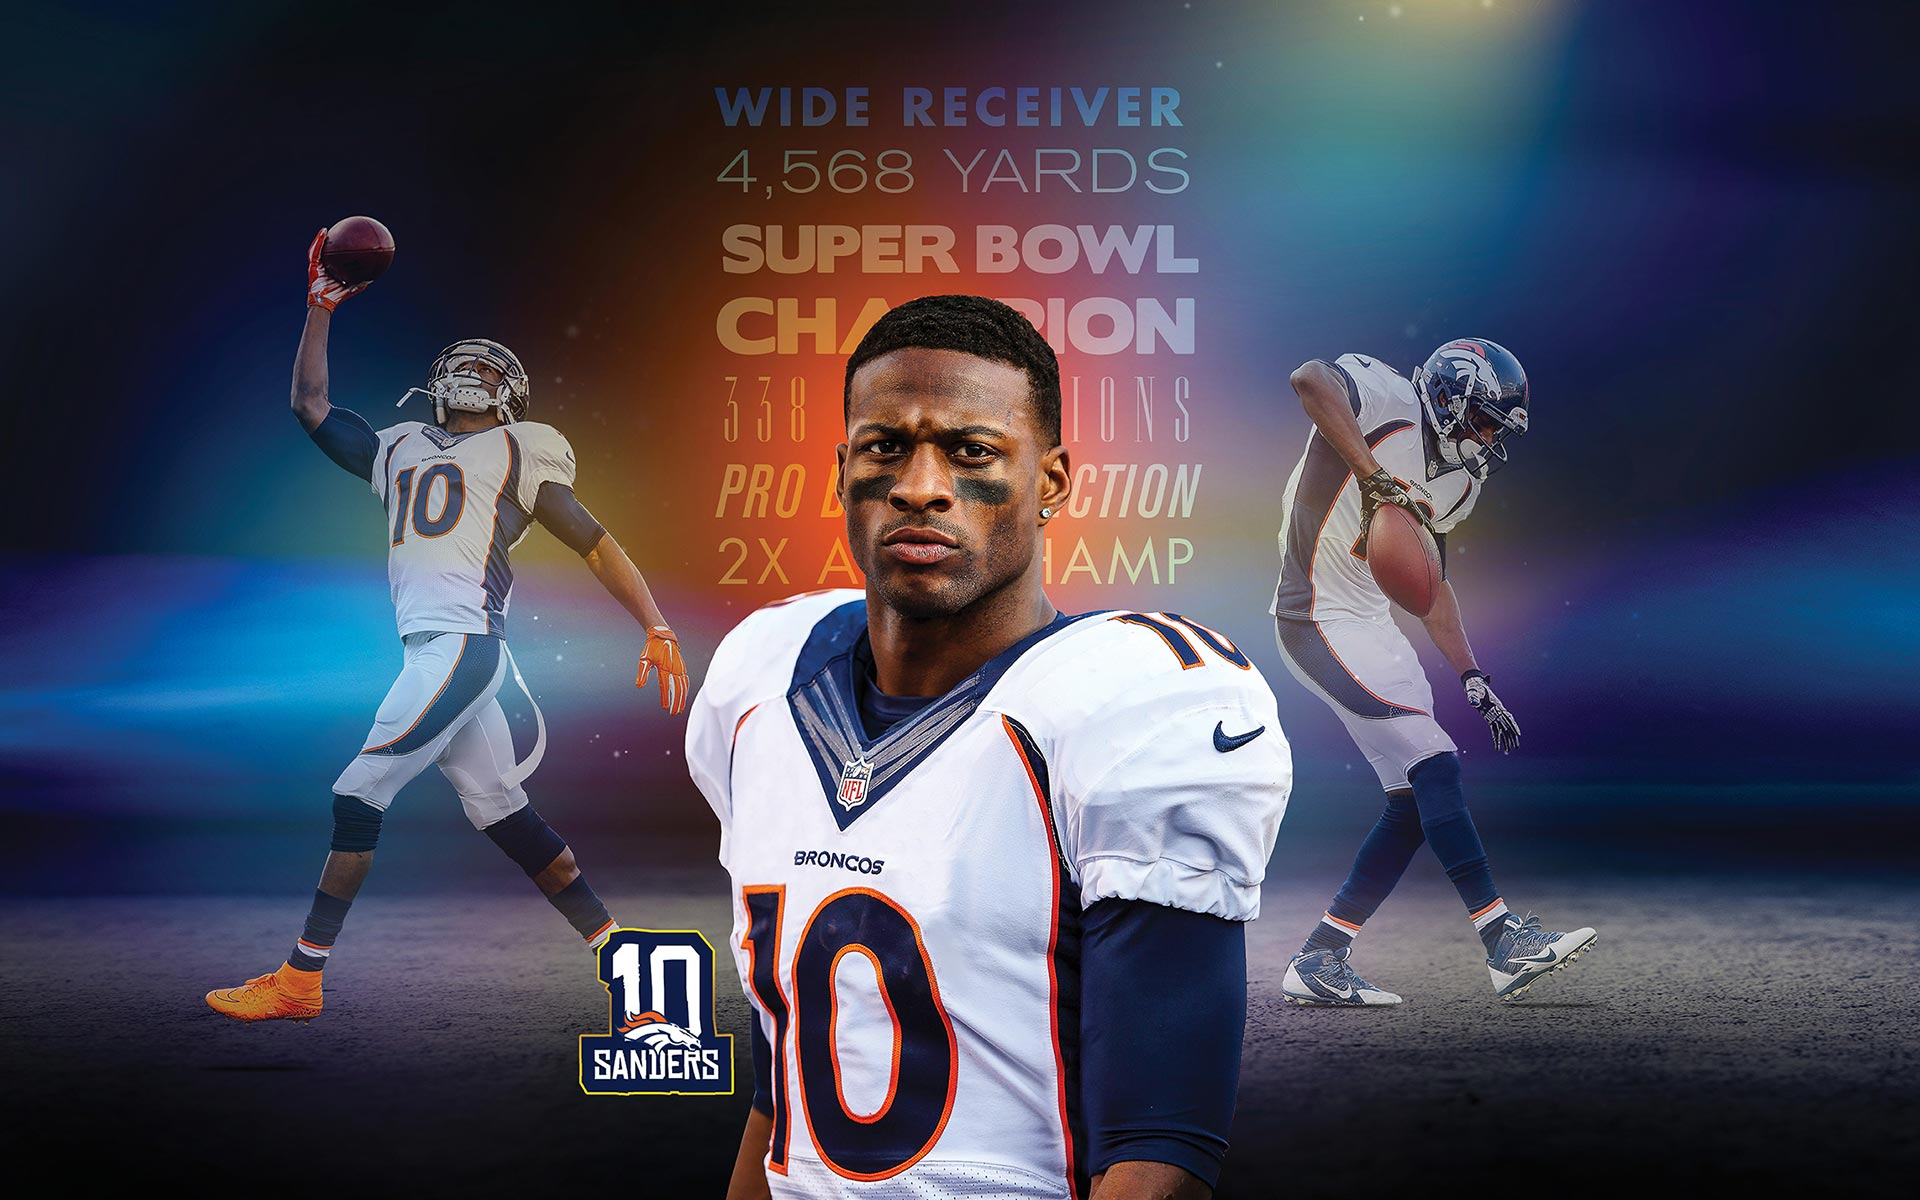 NFL Denver Broncos Wallpapers 5